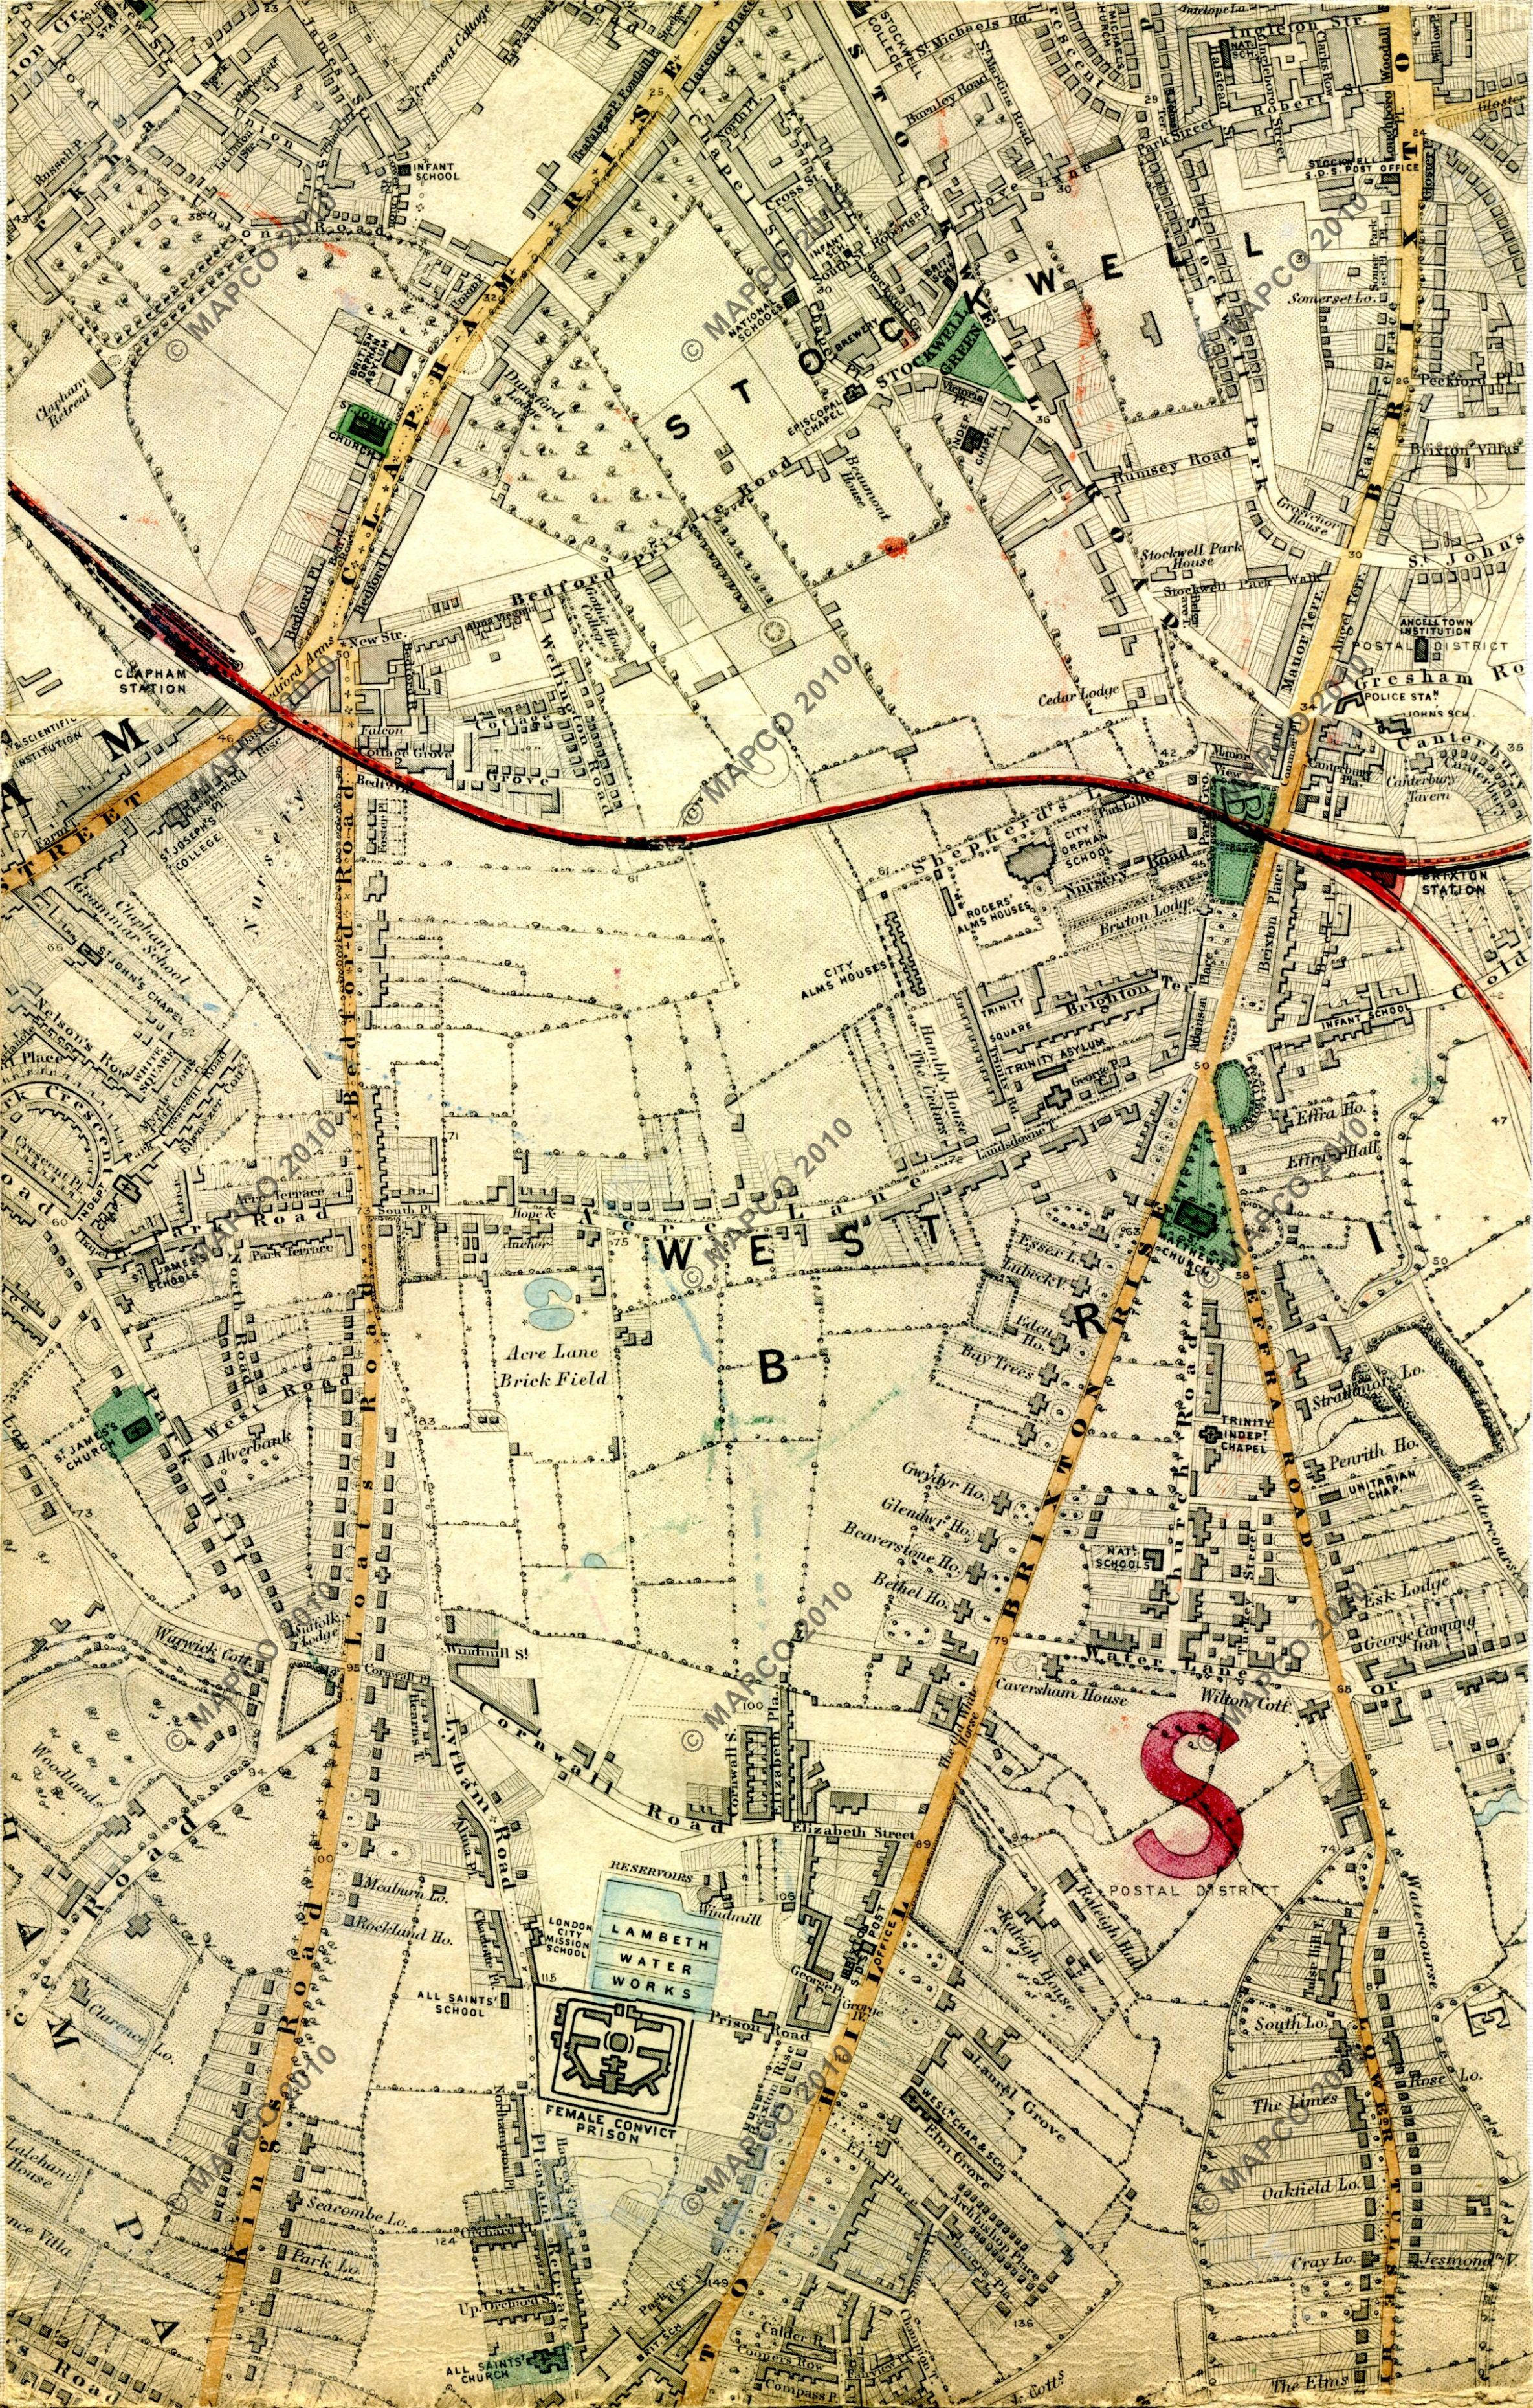 Map Of London And Surrounding Suburbs.Stanford S Library Map Of London And Its Suburbs 1864 With Railway